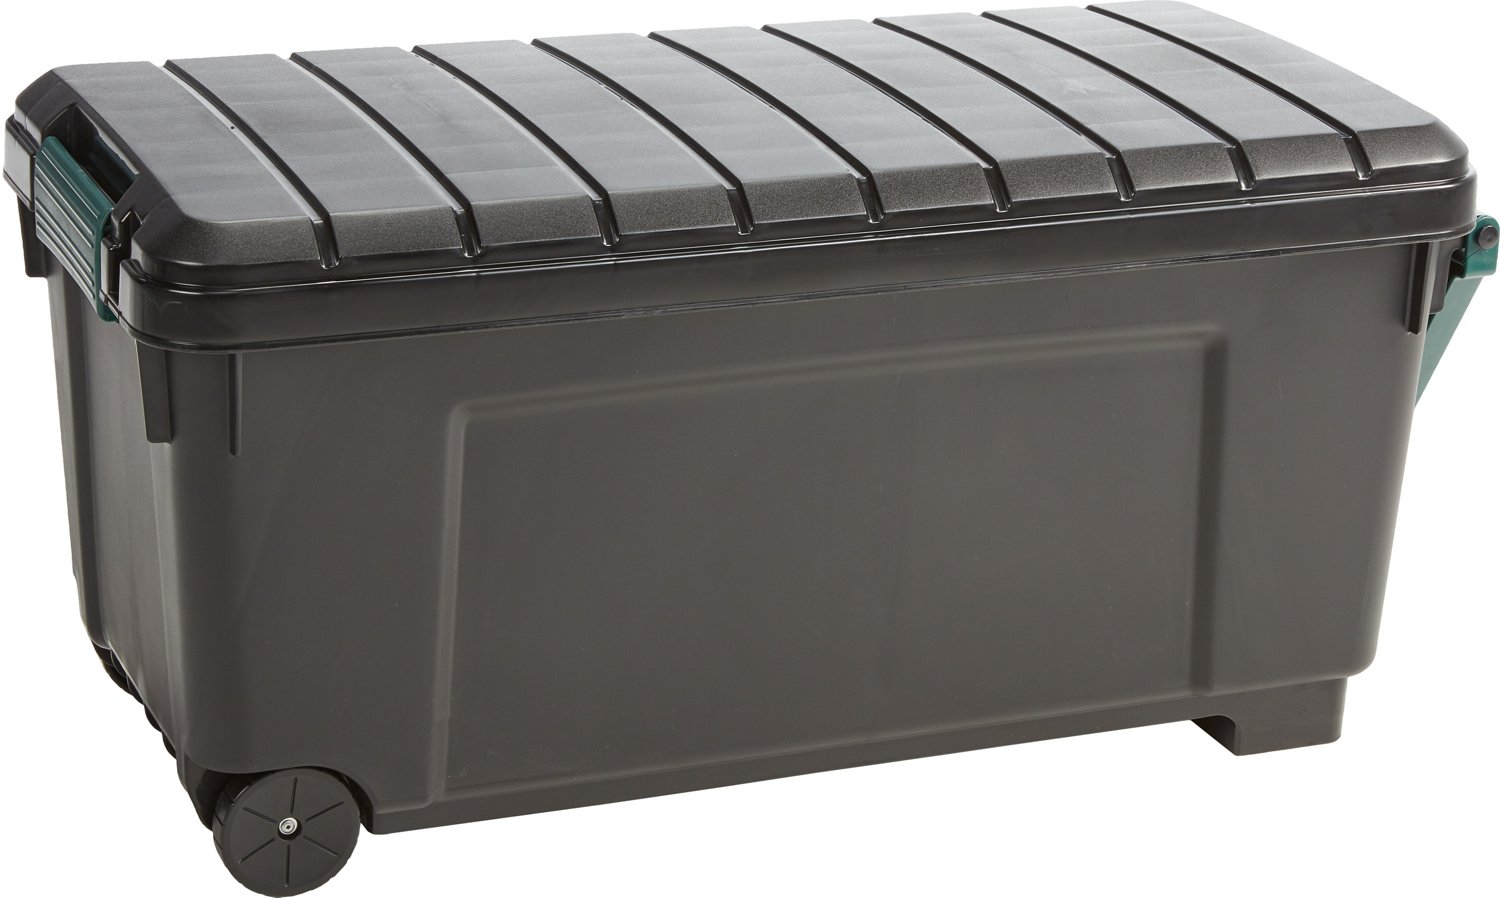 Remington Heavy-Duty Storage Trunk - view number 1 ...  sc 1 st  Academy Sports + Outdoors & Remington Heavy-Duty Storage Trunk | Academy